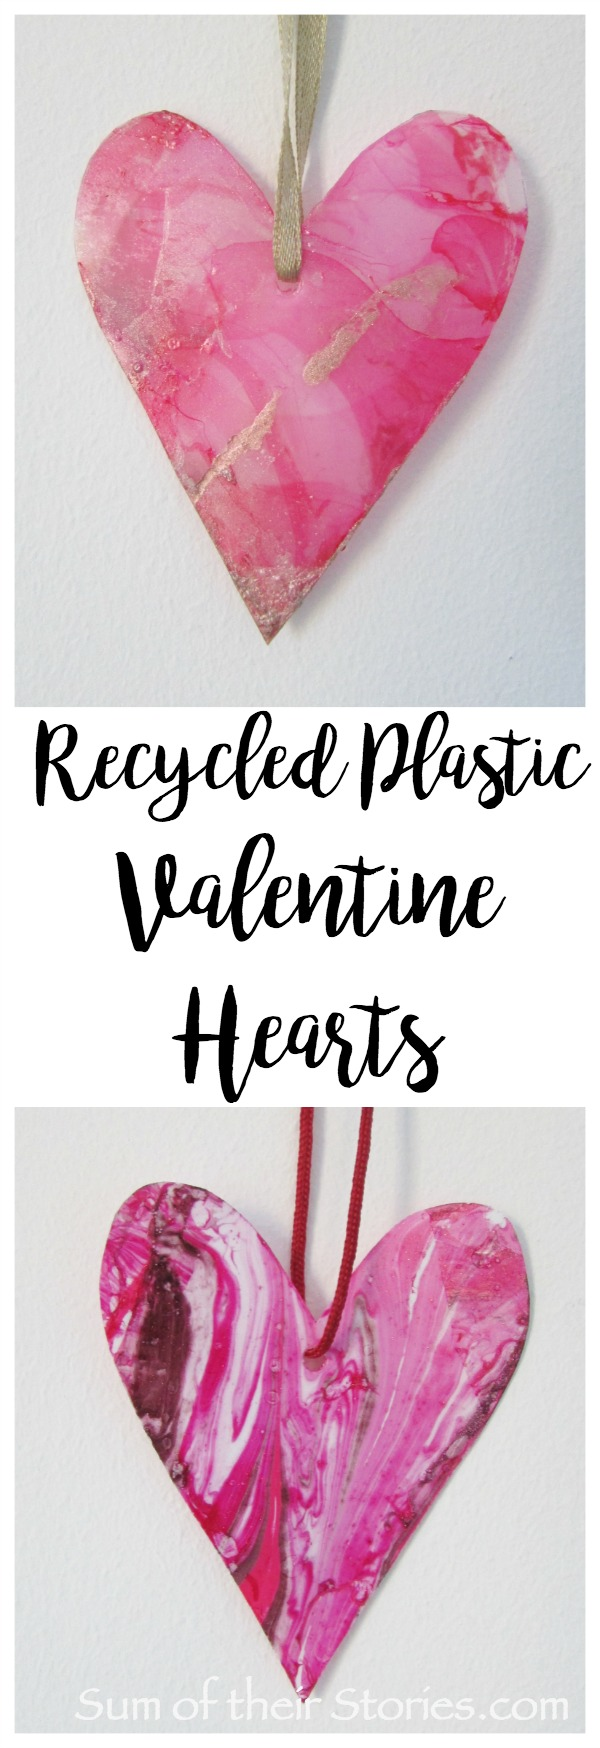 upcycled plastic valentine hearts